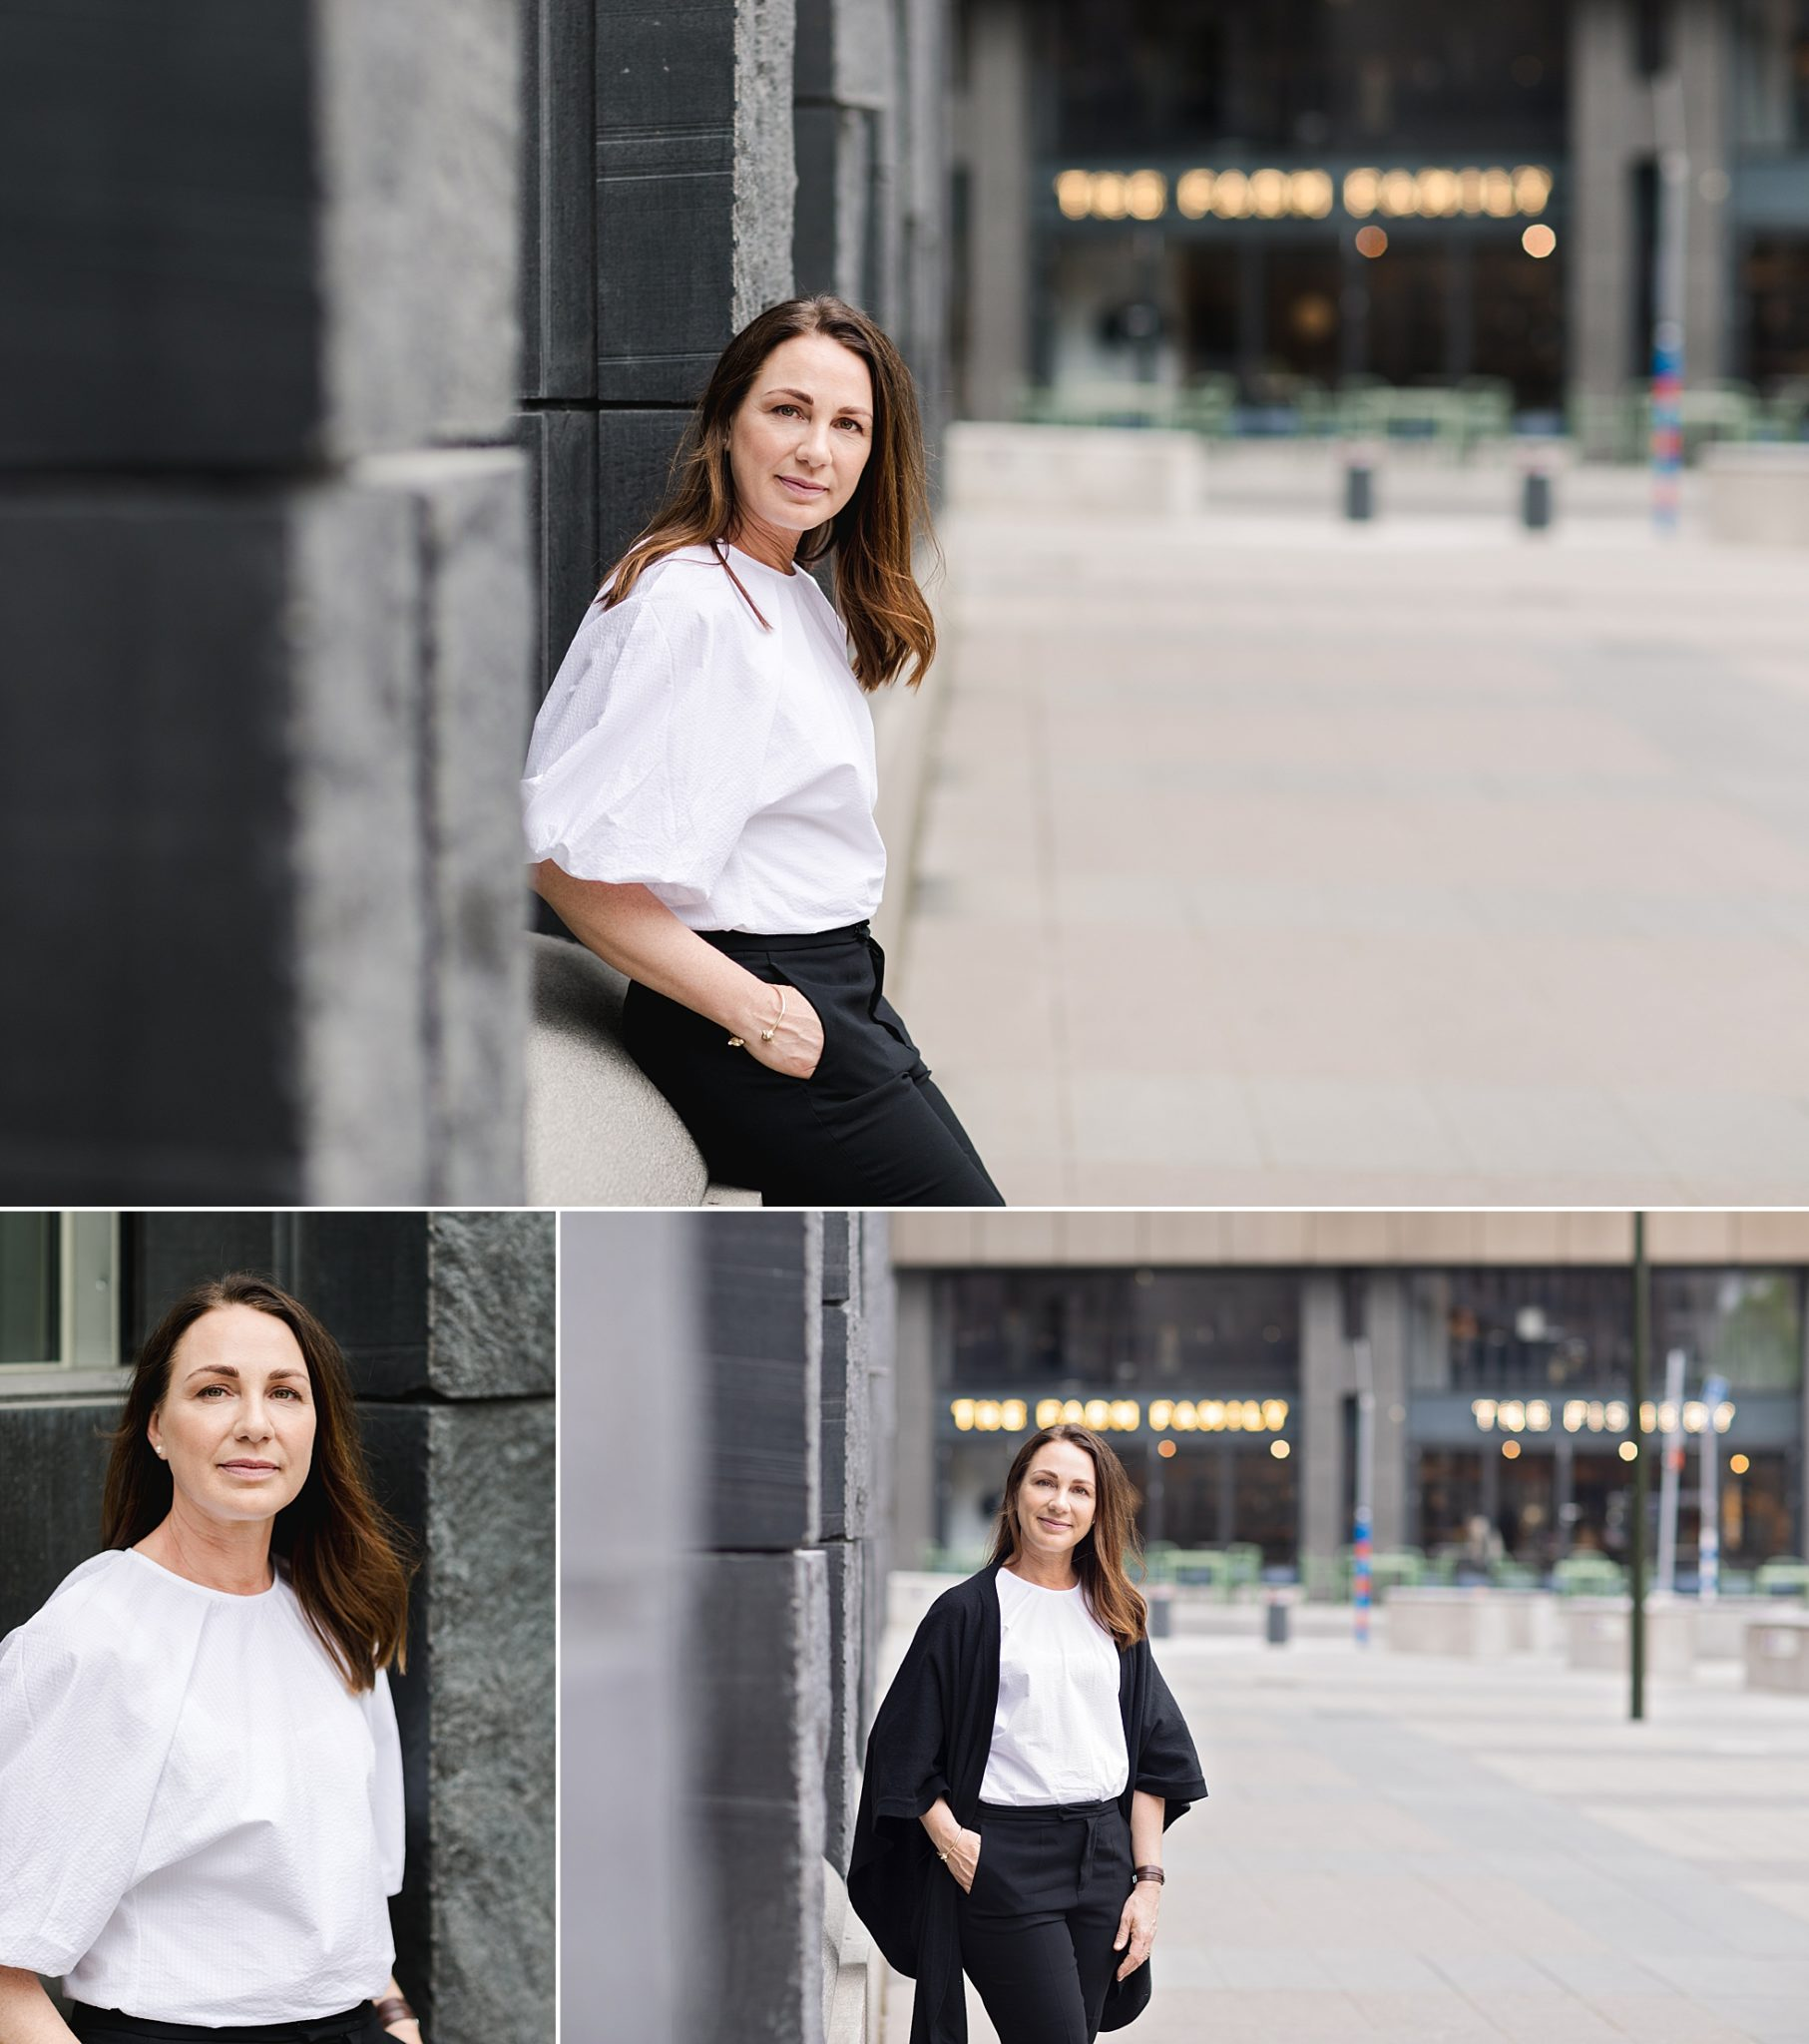 A female IT professional at Brunkebergstorg, a beautiful photo shoot location in Stockholm